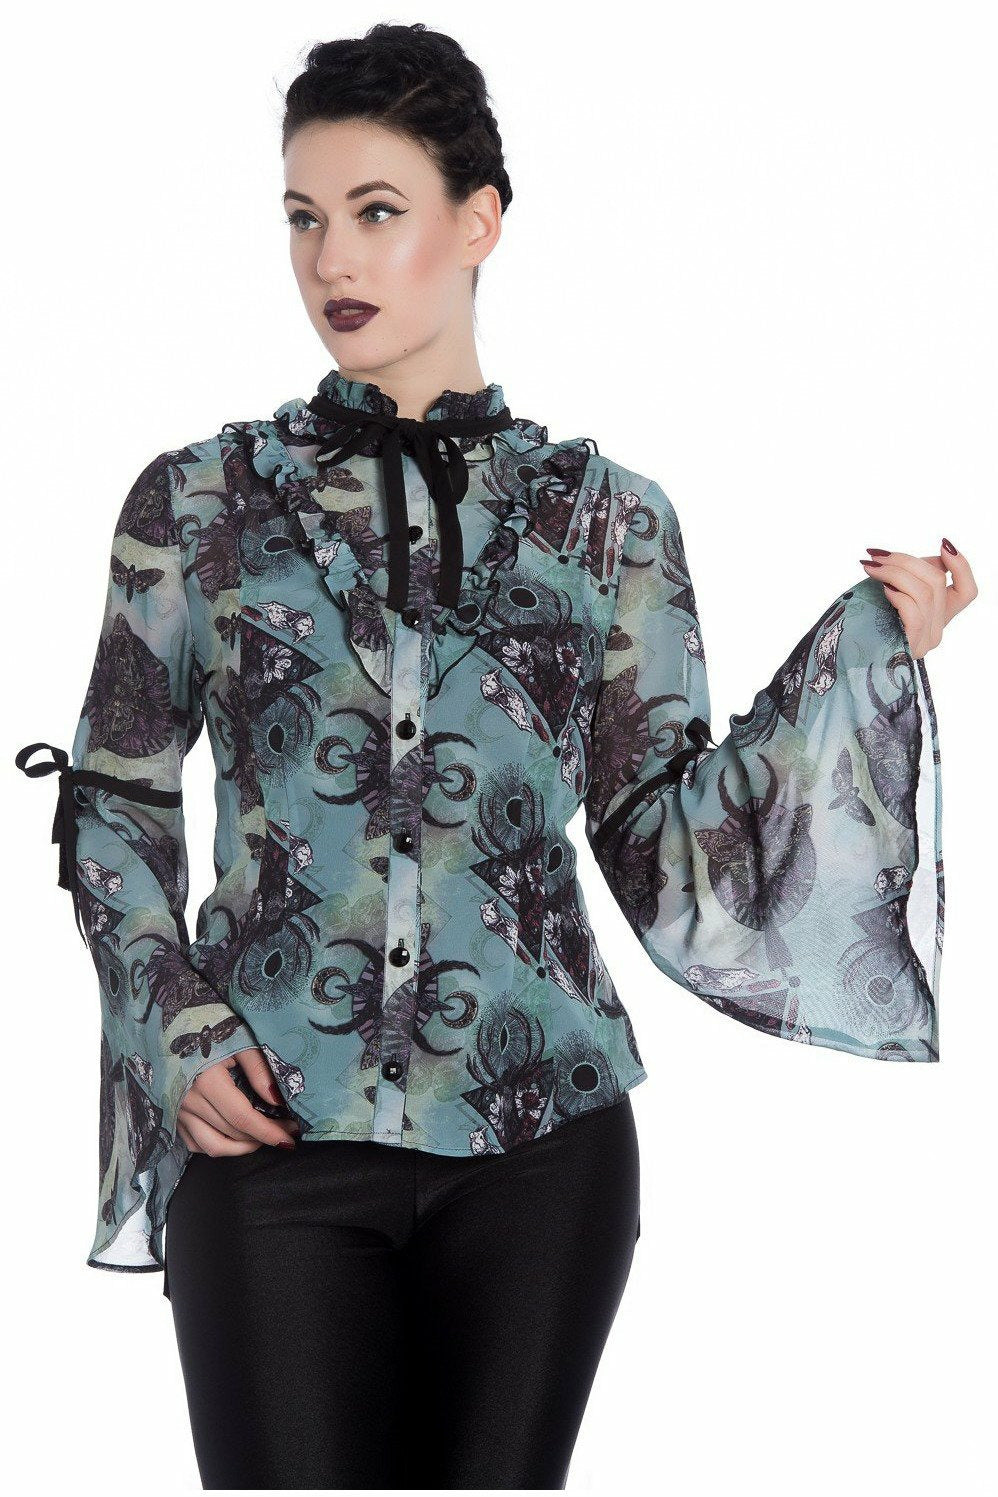 After Death Blouse